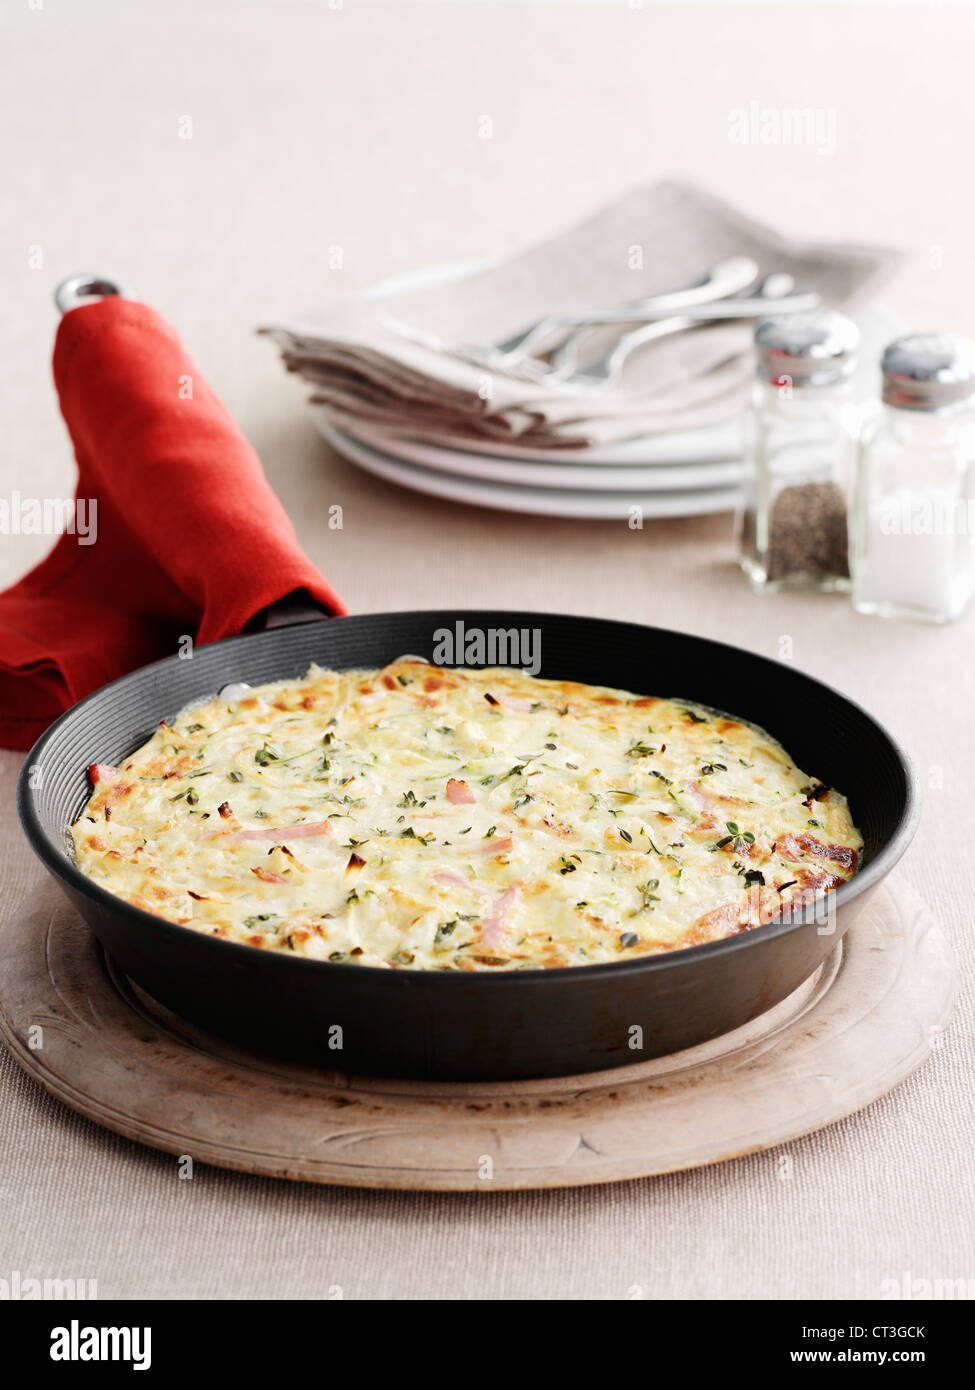 Omelet pan on wooden board - Stock Image